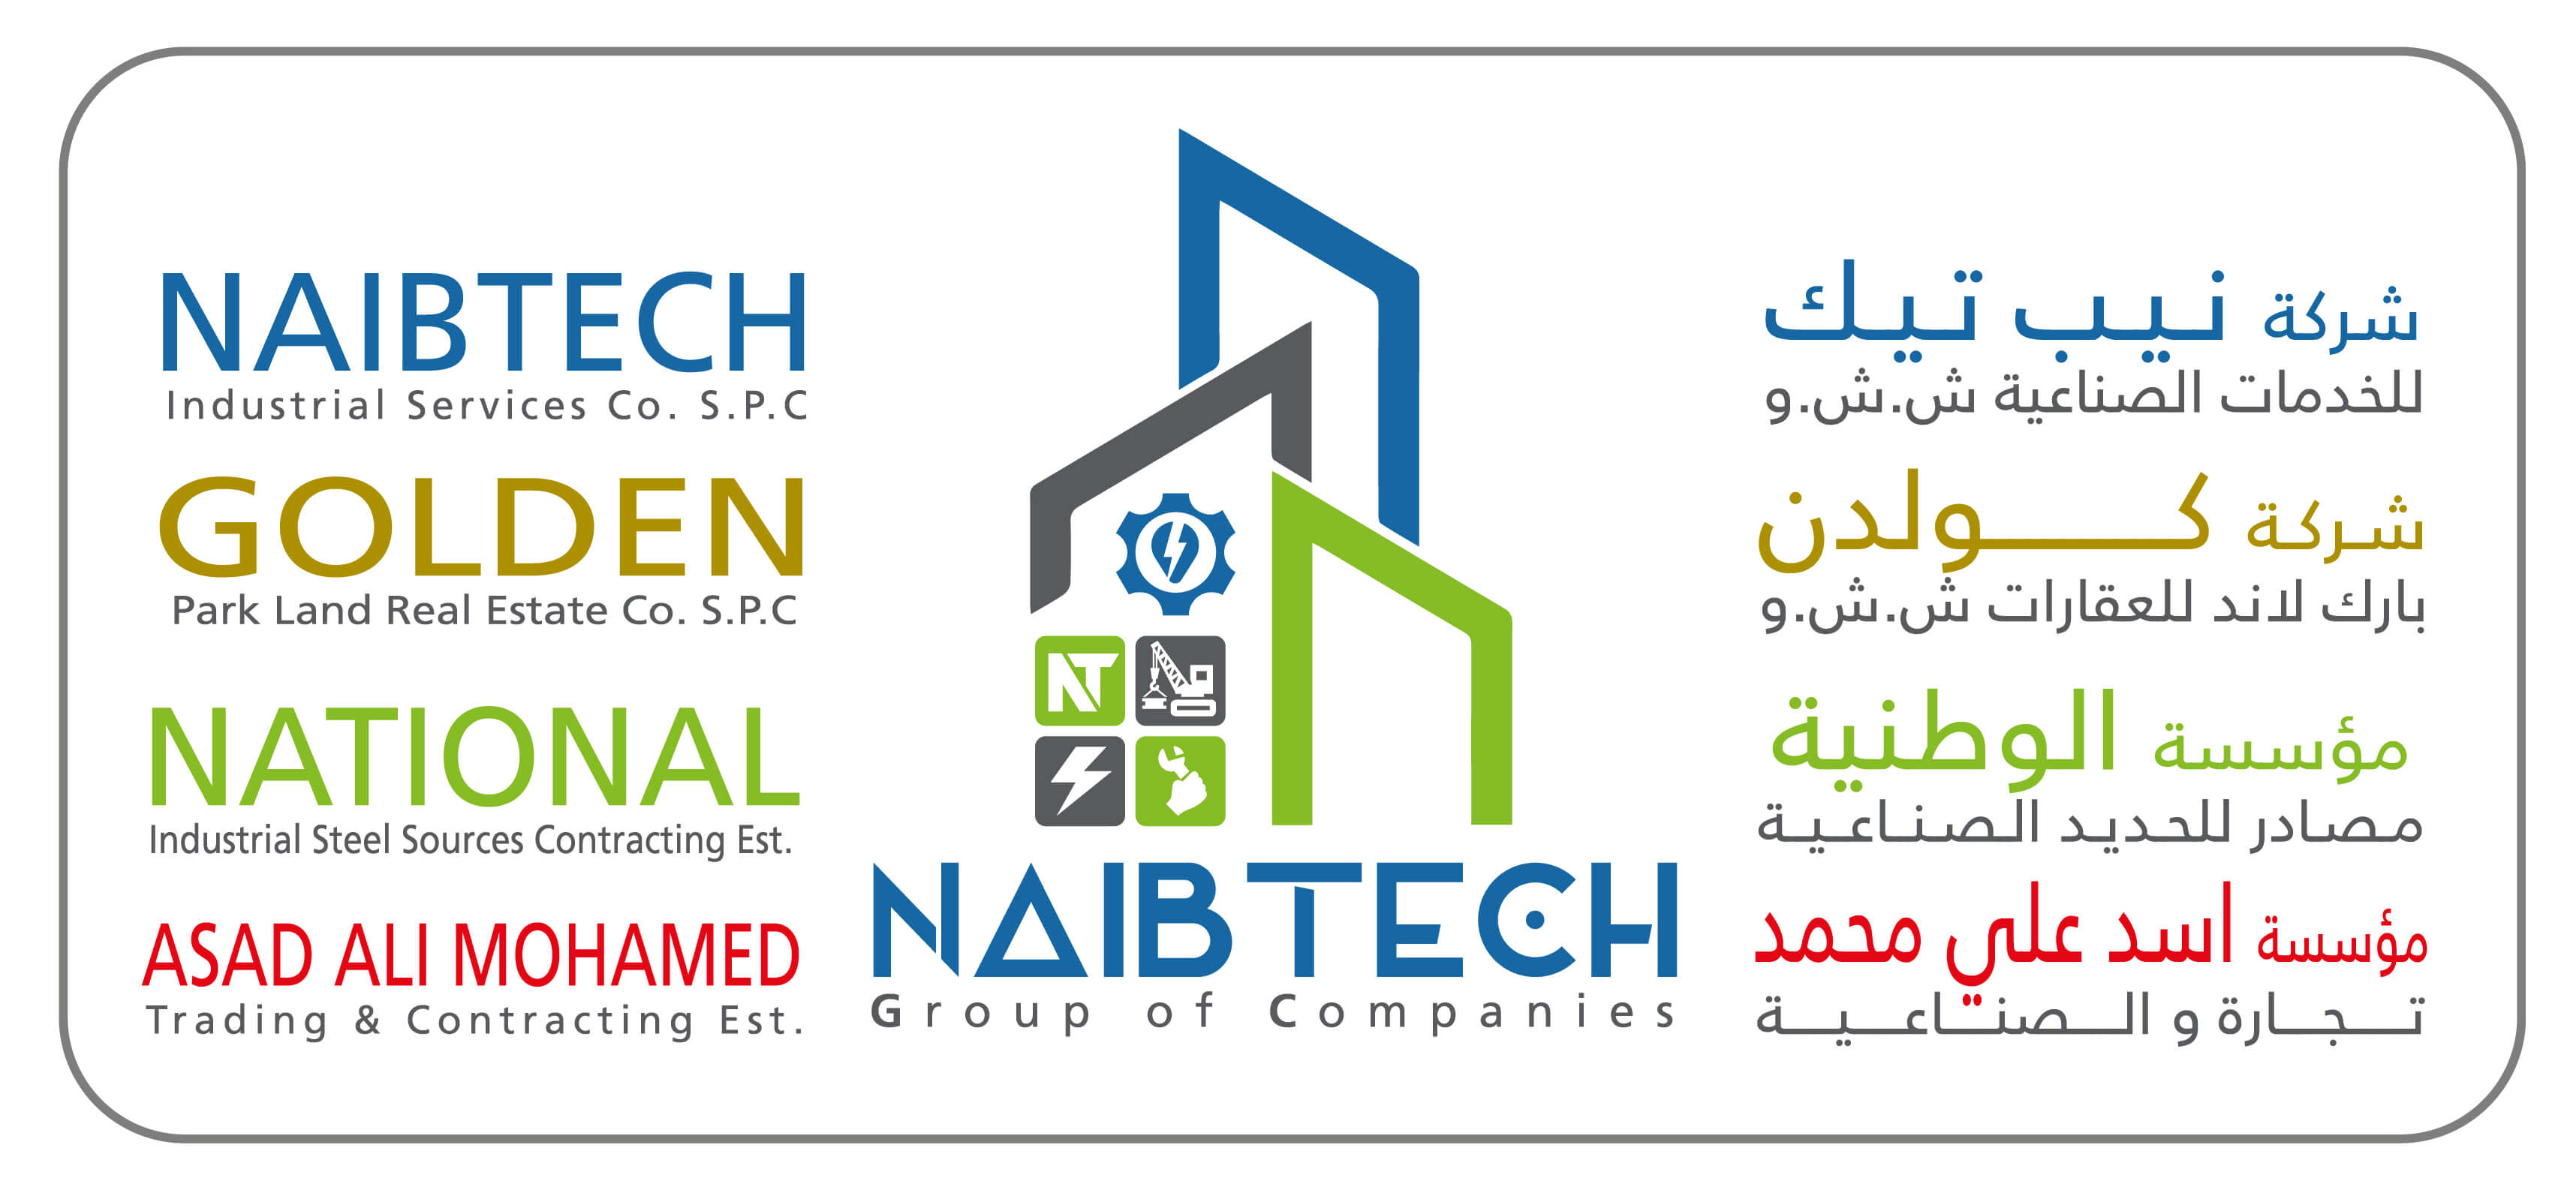 NAIBTECH Group of Companies